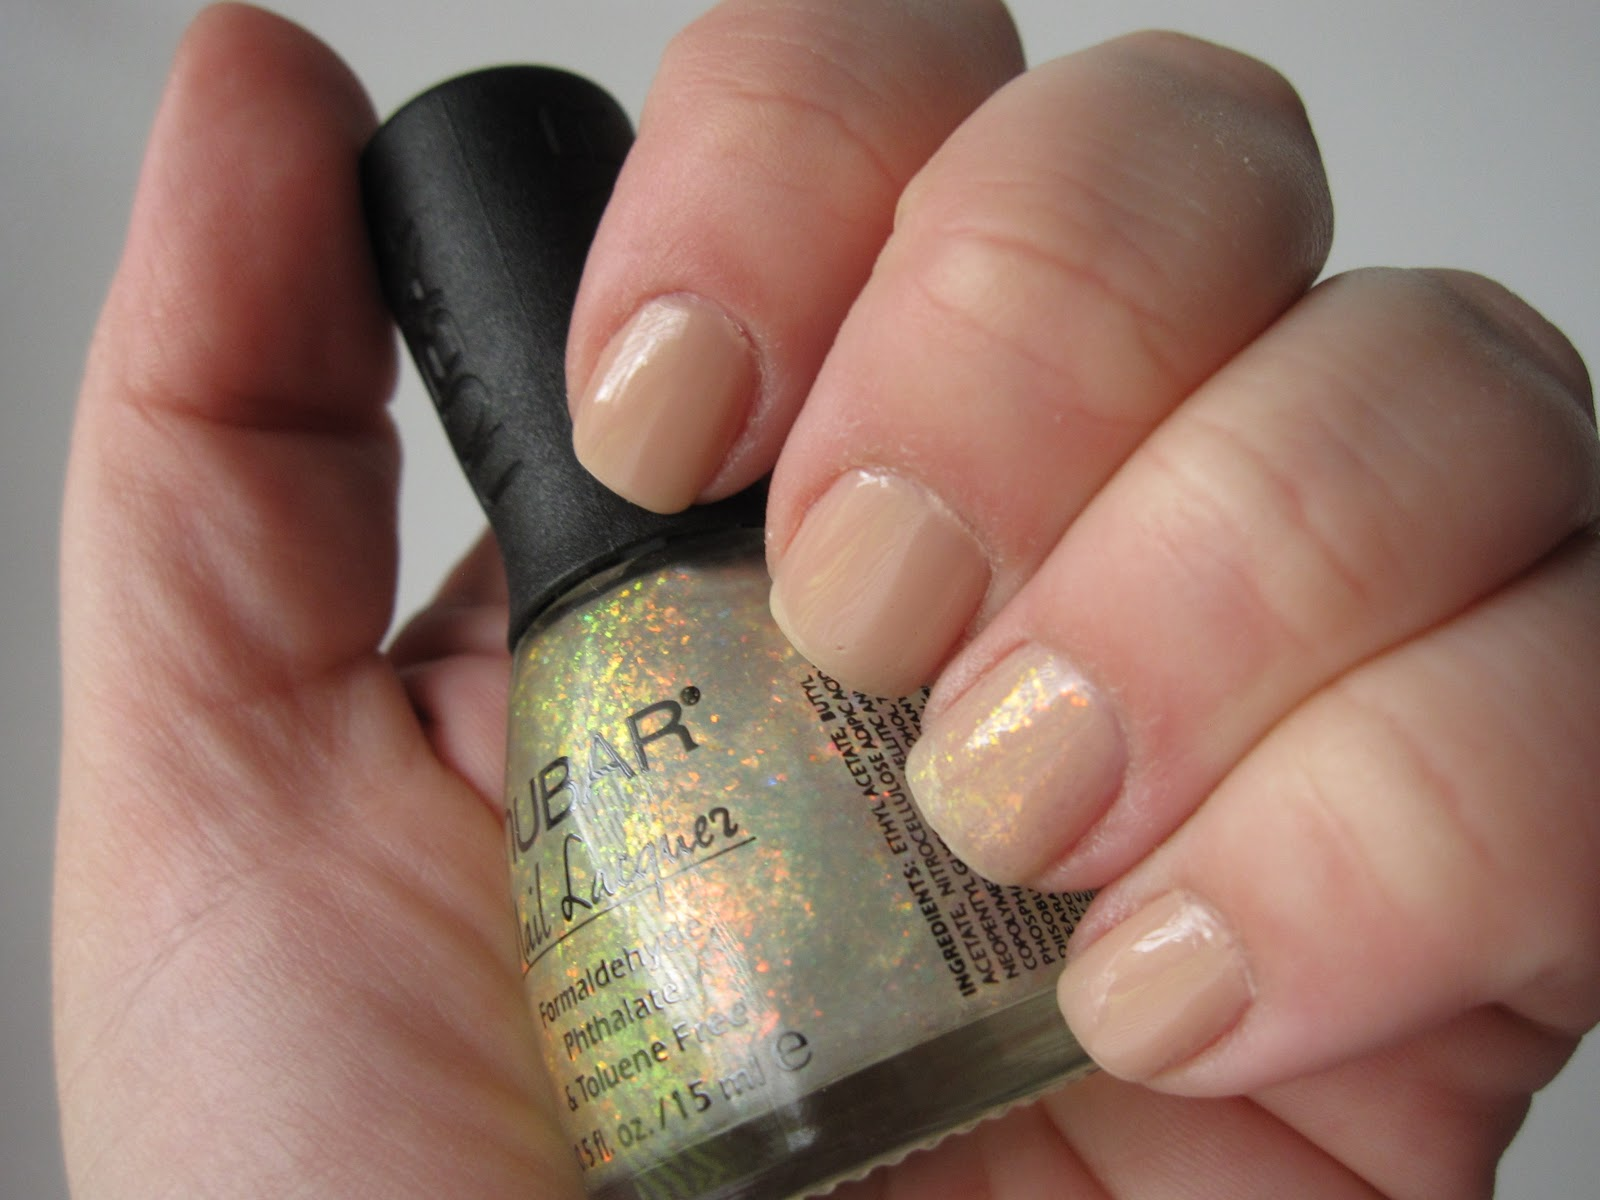 At the Pink of Perfection: Manicure Must: Nubar 2010